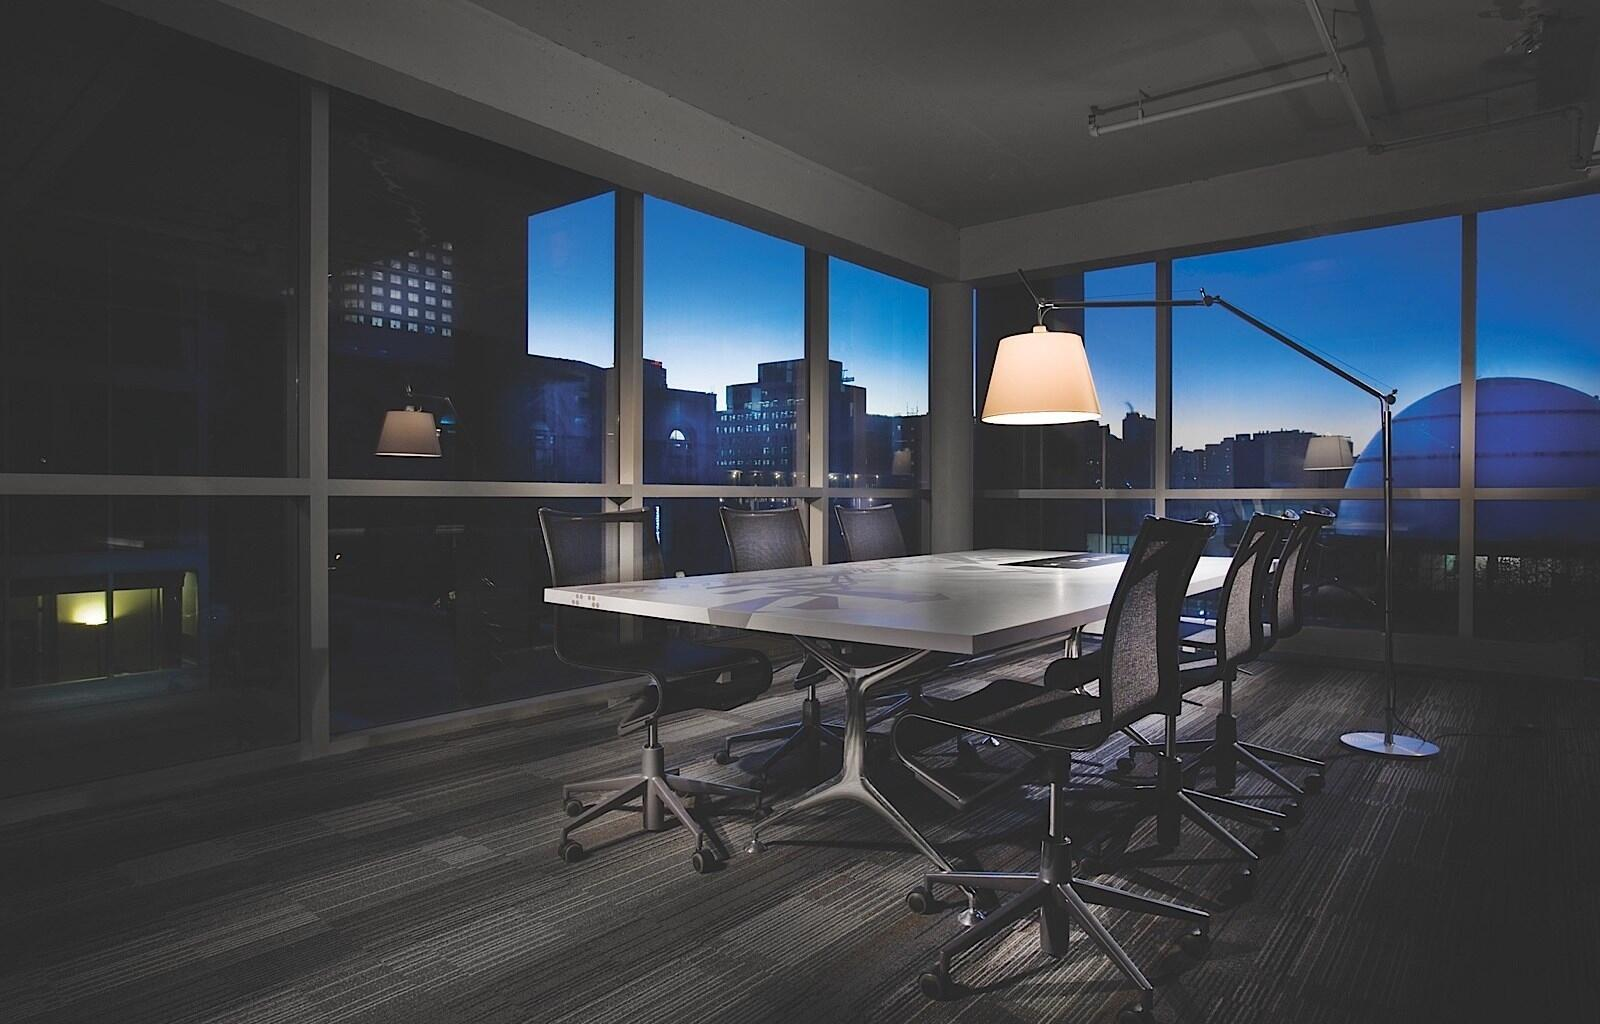 Montreal Meeting Room at Night